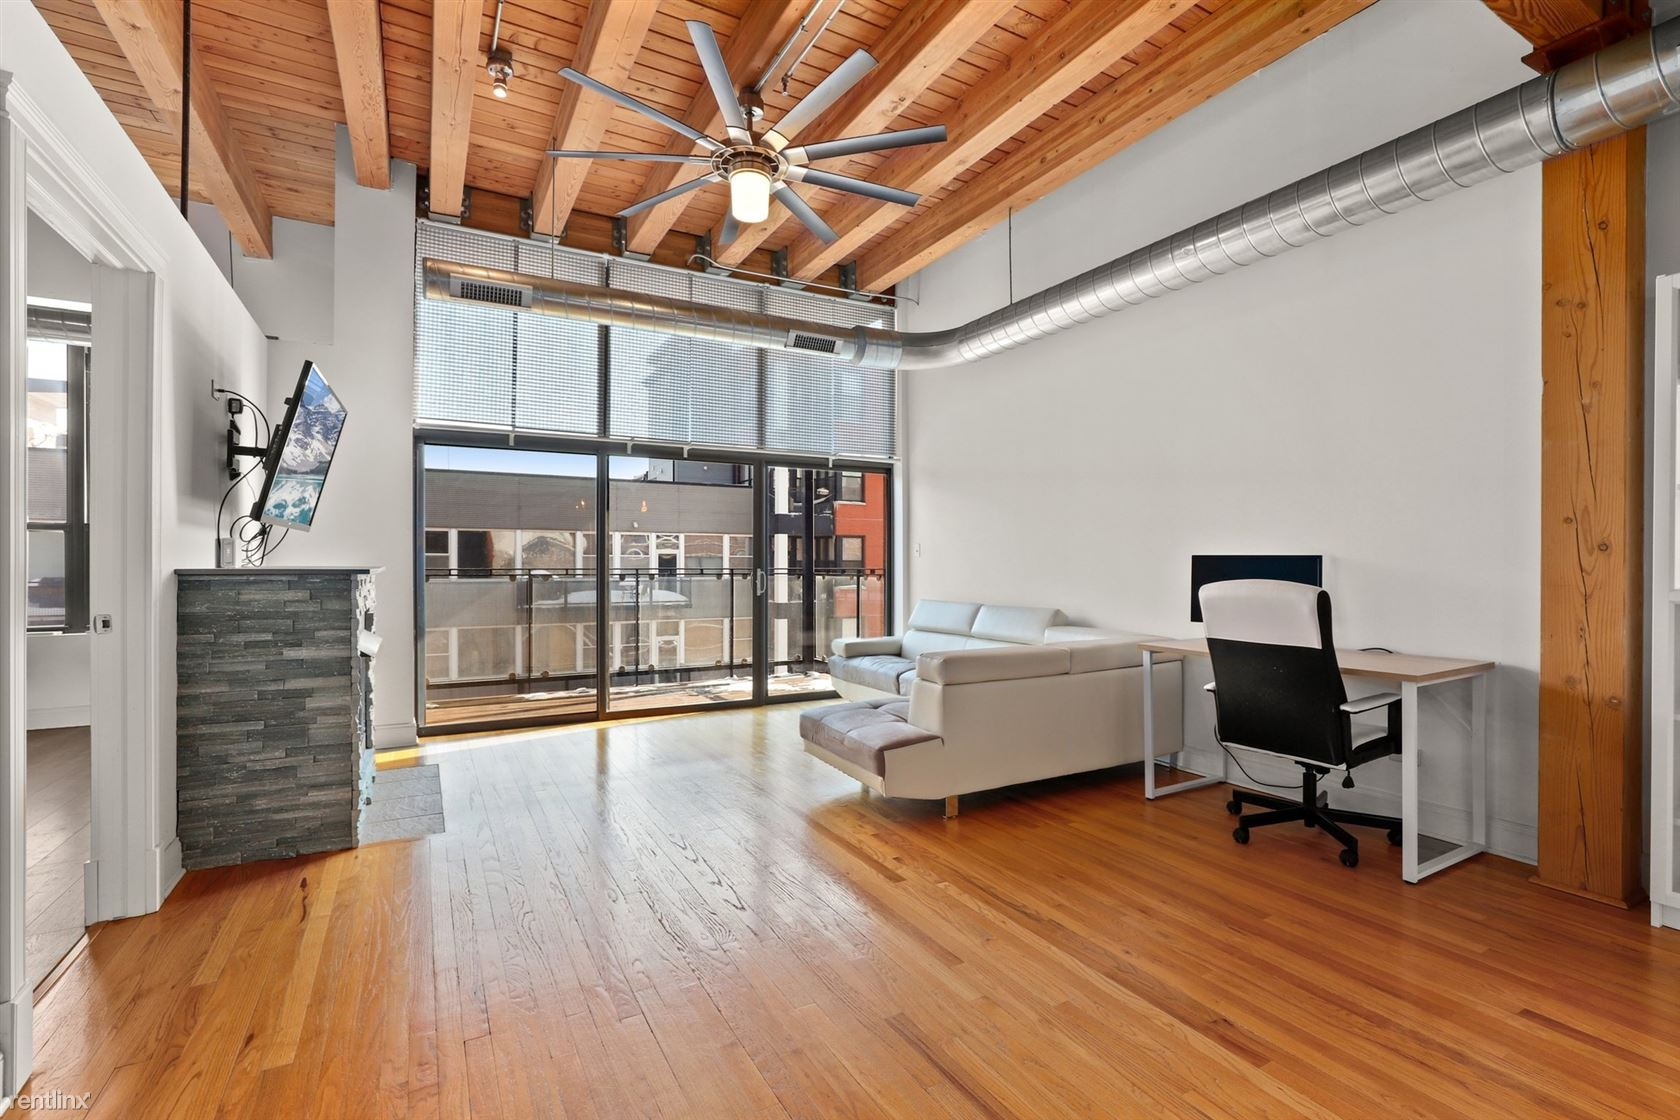 1610 S Halsted St, Chicago, IL - $850 USD/ month